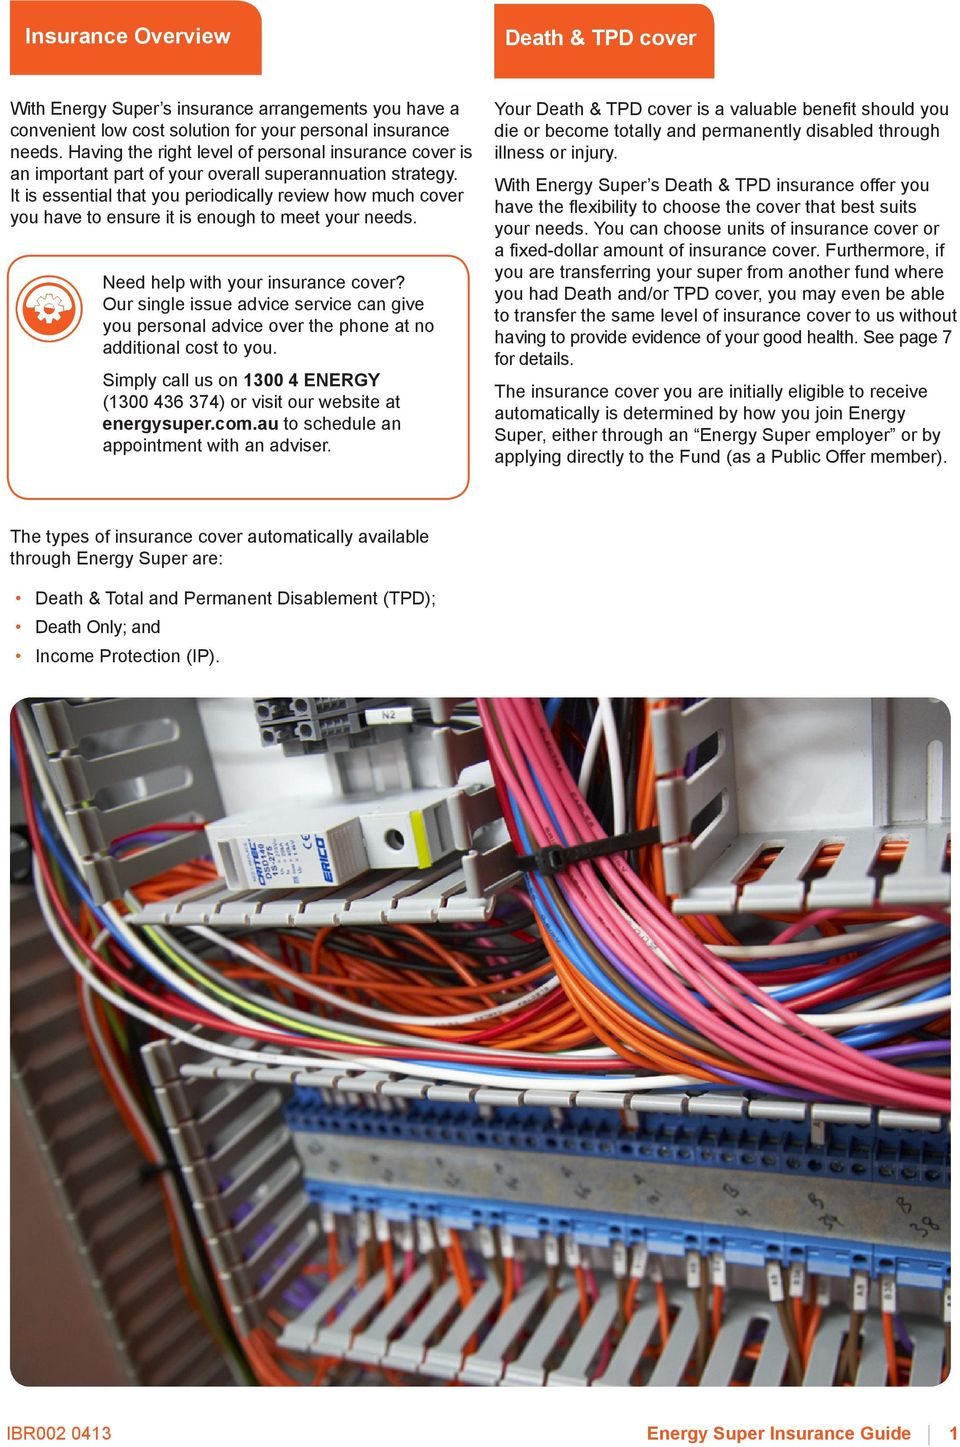 Energy Super Insurance Guide Prepared And Issued 30 April Pdf Electrical Wiring Covered By It Is Essential That You Periodically Review How Much Cover Have To Ensure